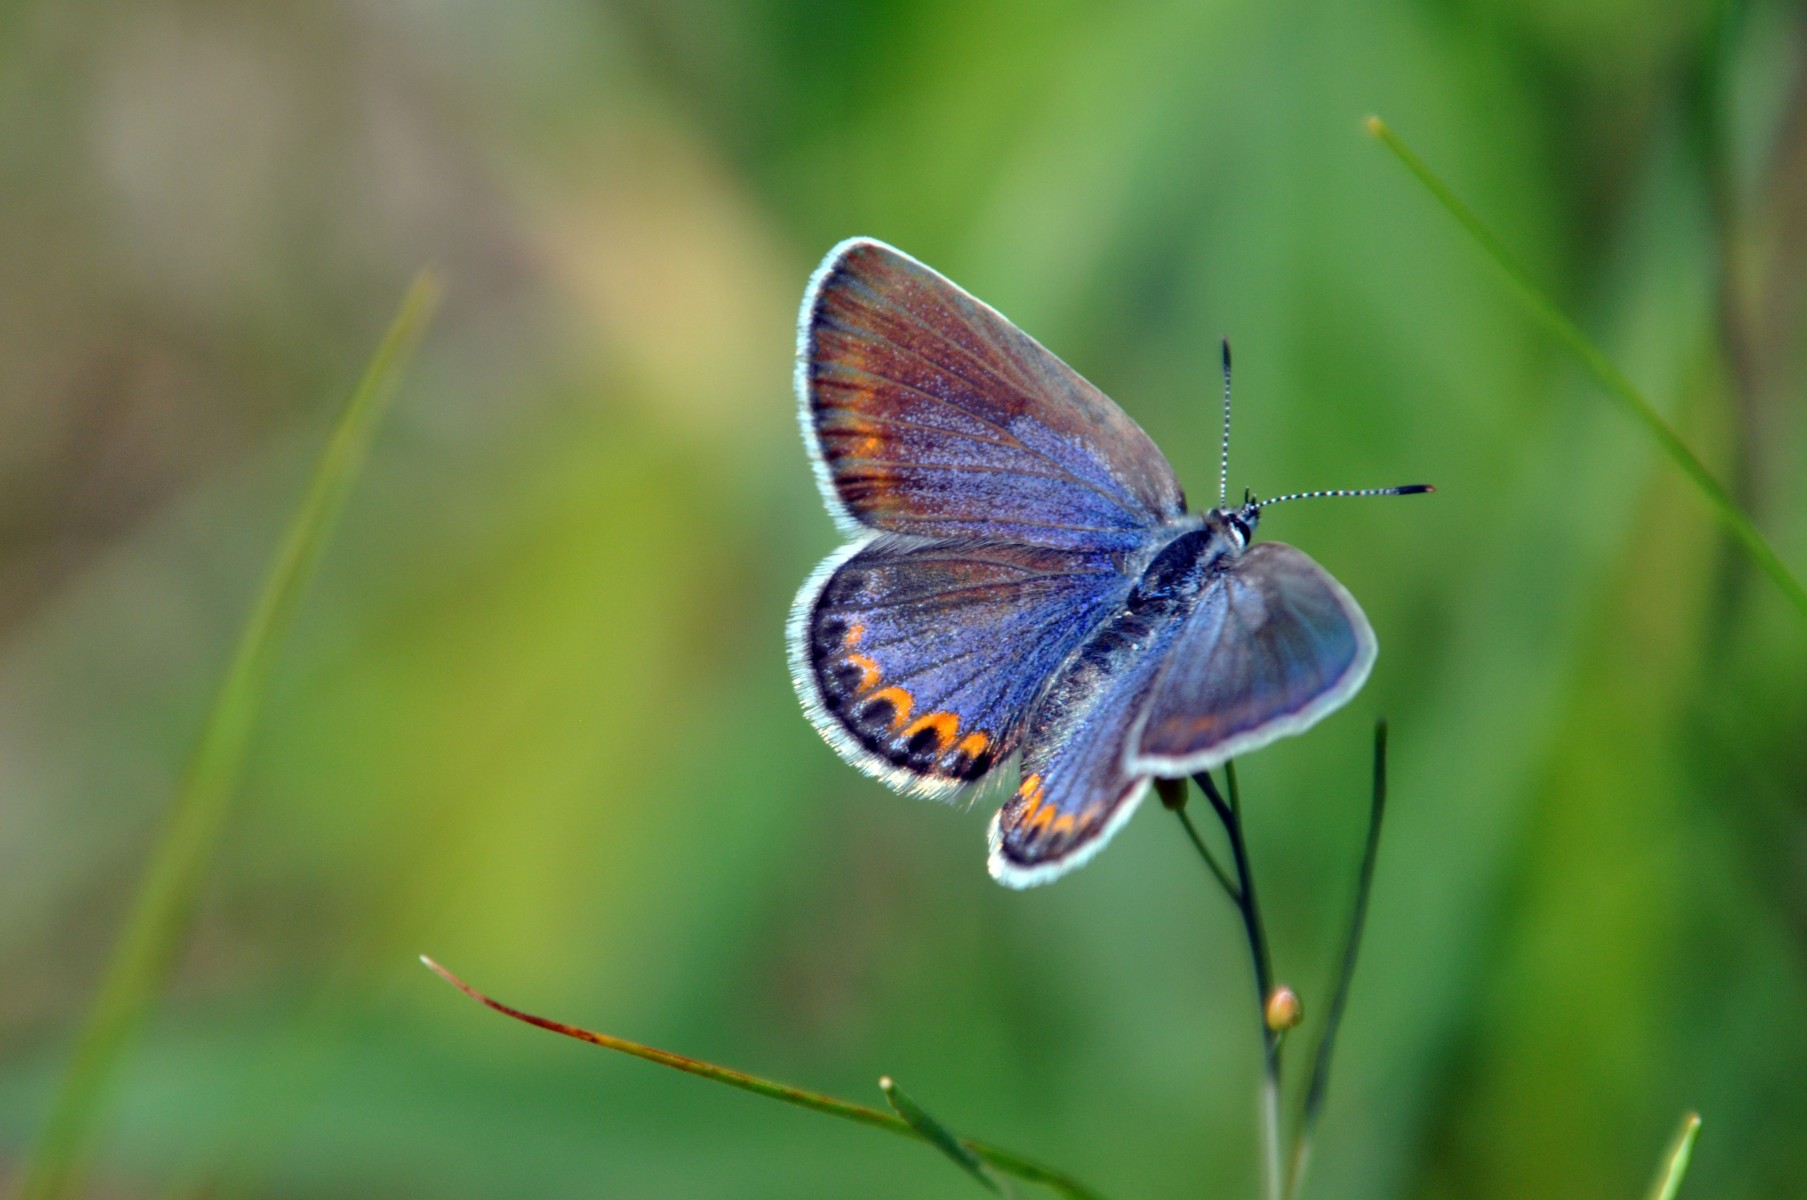 The endangered Karner blue butterfly (Lycaeidis melissa samuelis)